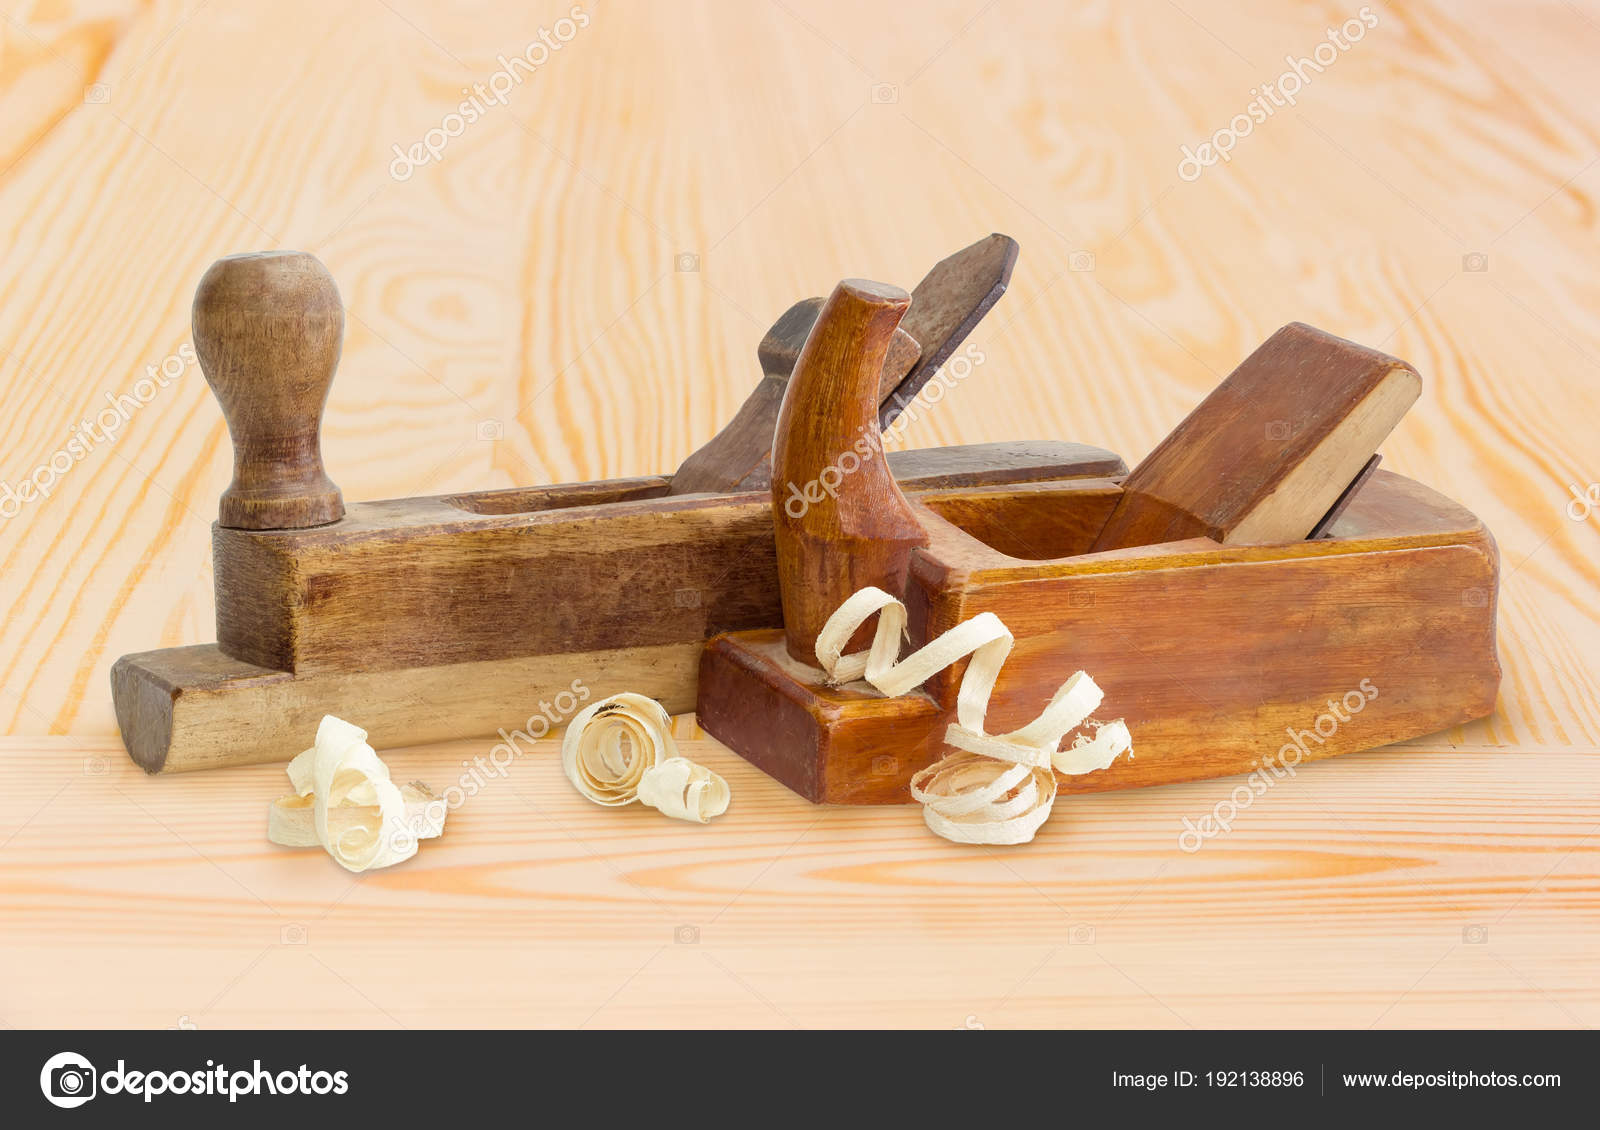 Two Old Wooden Hand Planes Different Purposes On Wooden Surface